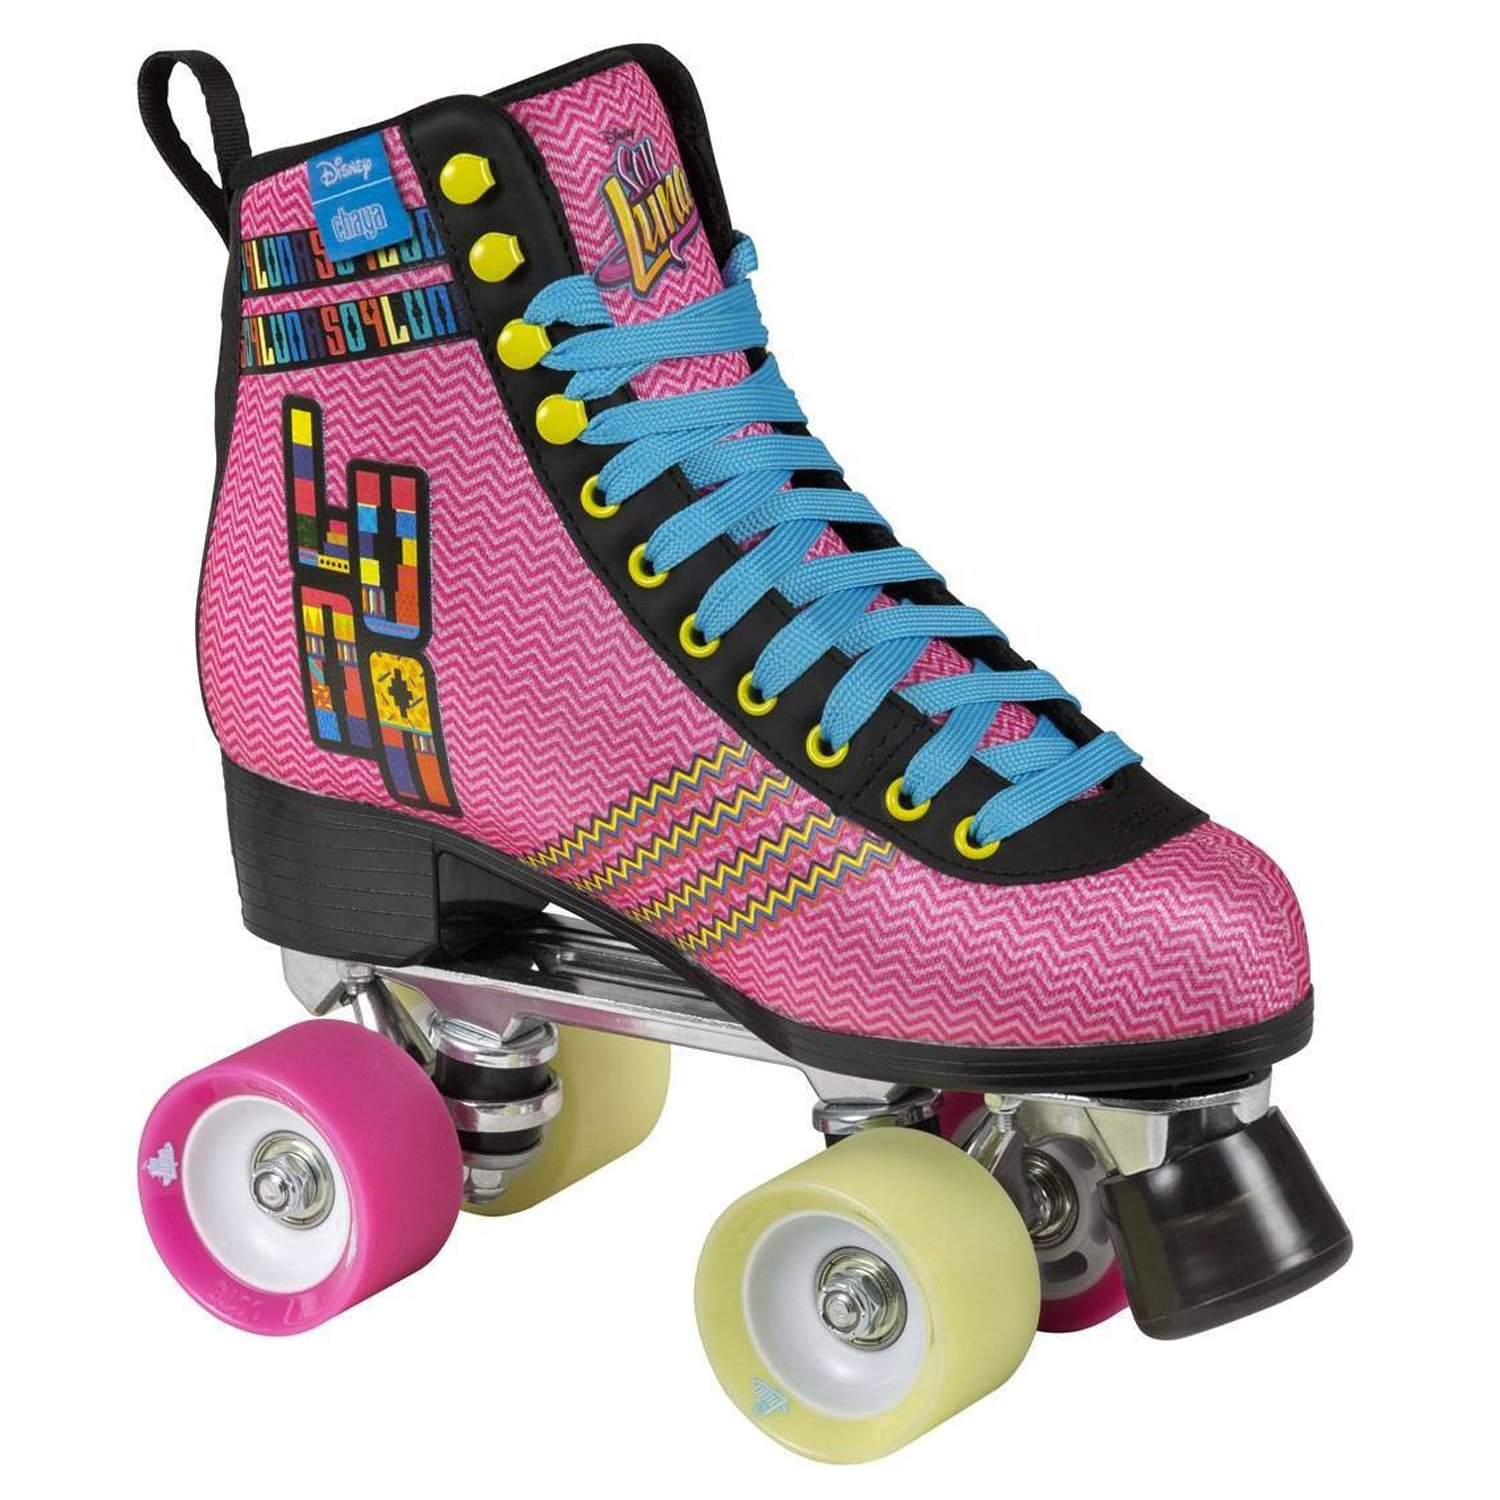 SOY LUNA I Am Moon – Light Up Skates Roller Training 36//37